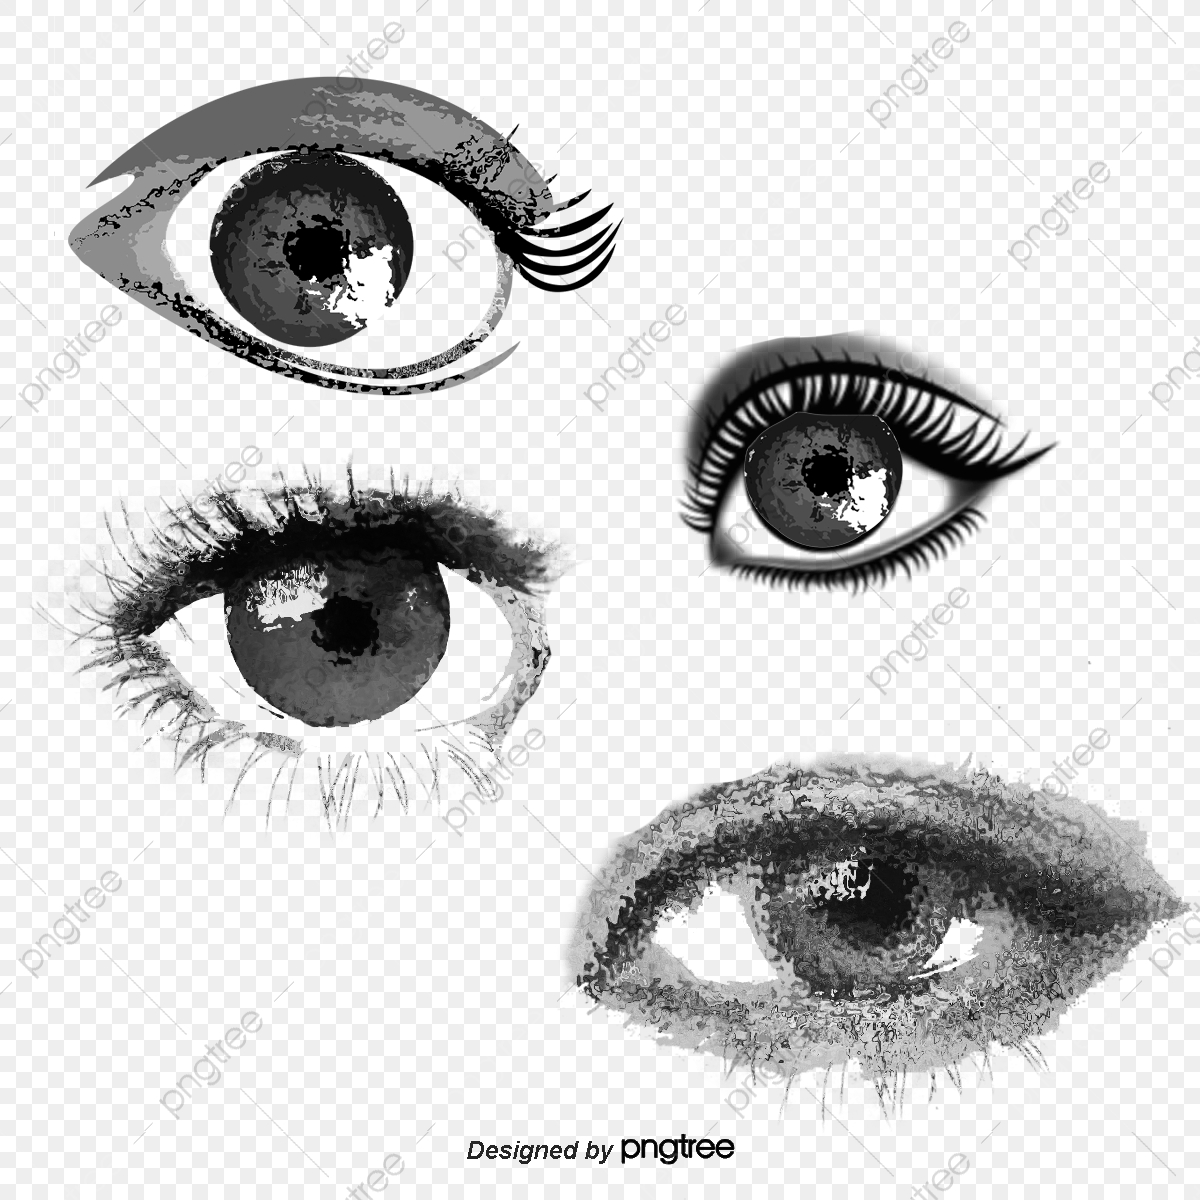 Beautiful Female Eyes Royalty Free Cliparts, Vectors, And Stock  Illustration. Image 38633432.